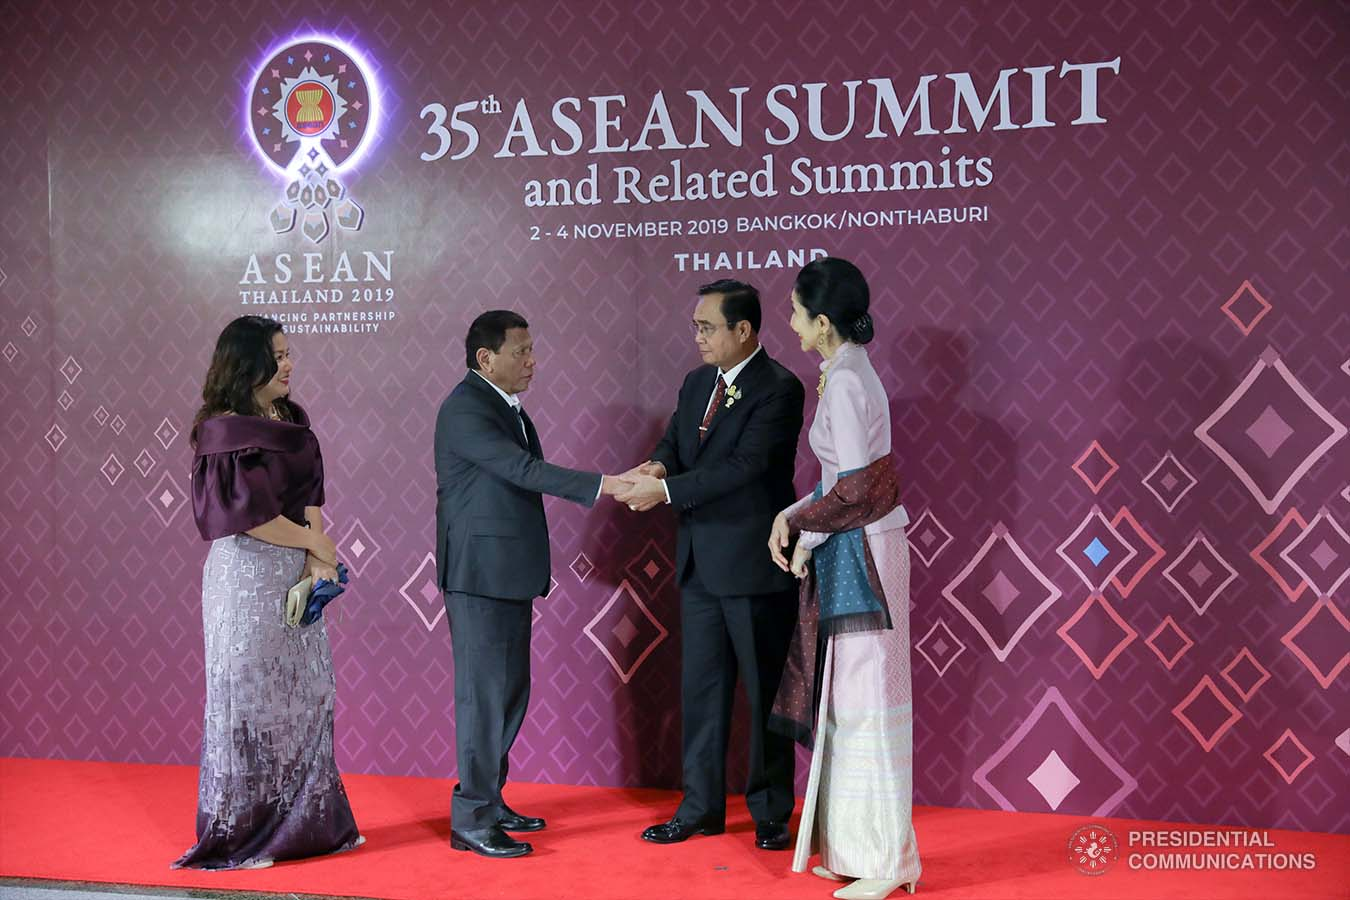 President Rodrigo Roa Duterte and his partner Cielito Avanceña are welcomed by Kingdom of Thailand Prime Minister Prayuth Chan-o-Cha and his wife Naraporn upon their arrival at the Impact Exhibition and Convention Center in Nonthaburi, Thailand for the gala dinner on November 3, 2019. SIMEON CELI JR./PRESIDENTIAL PHOTO